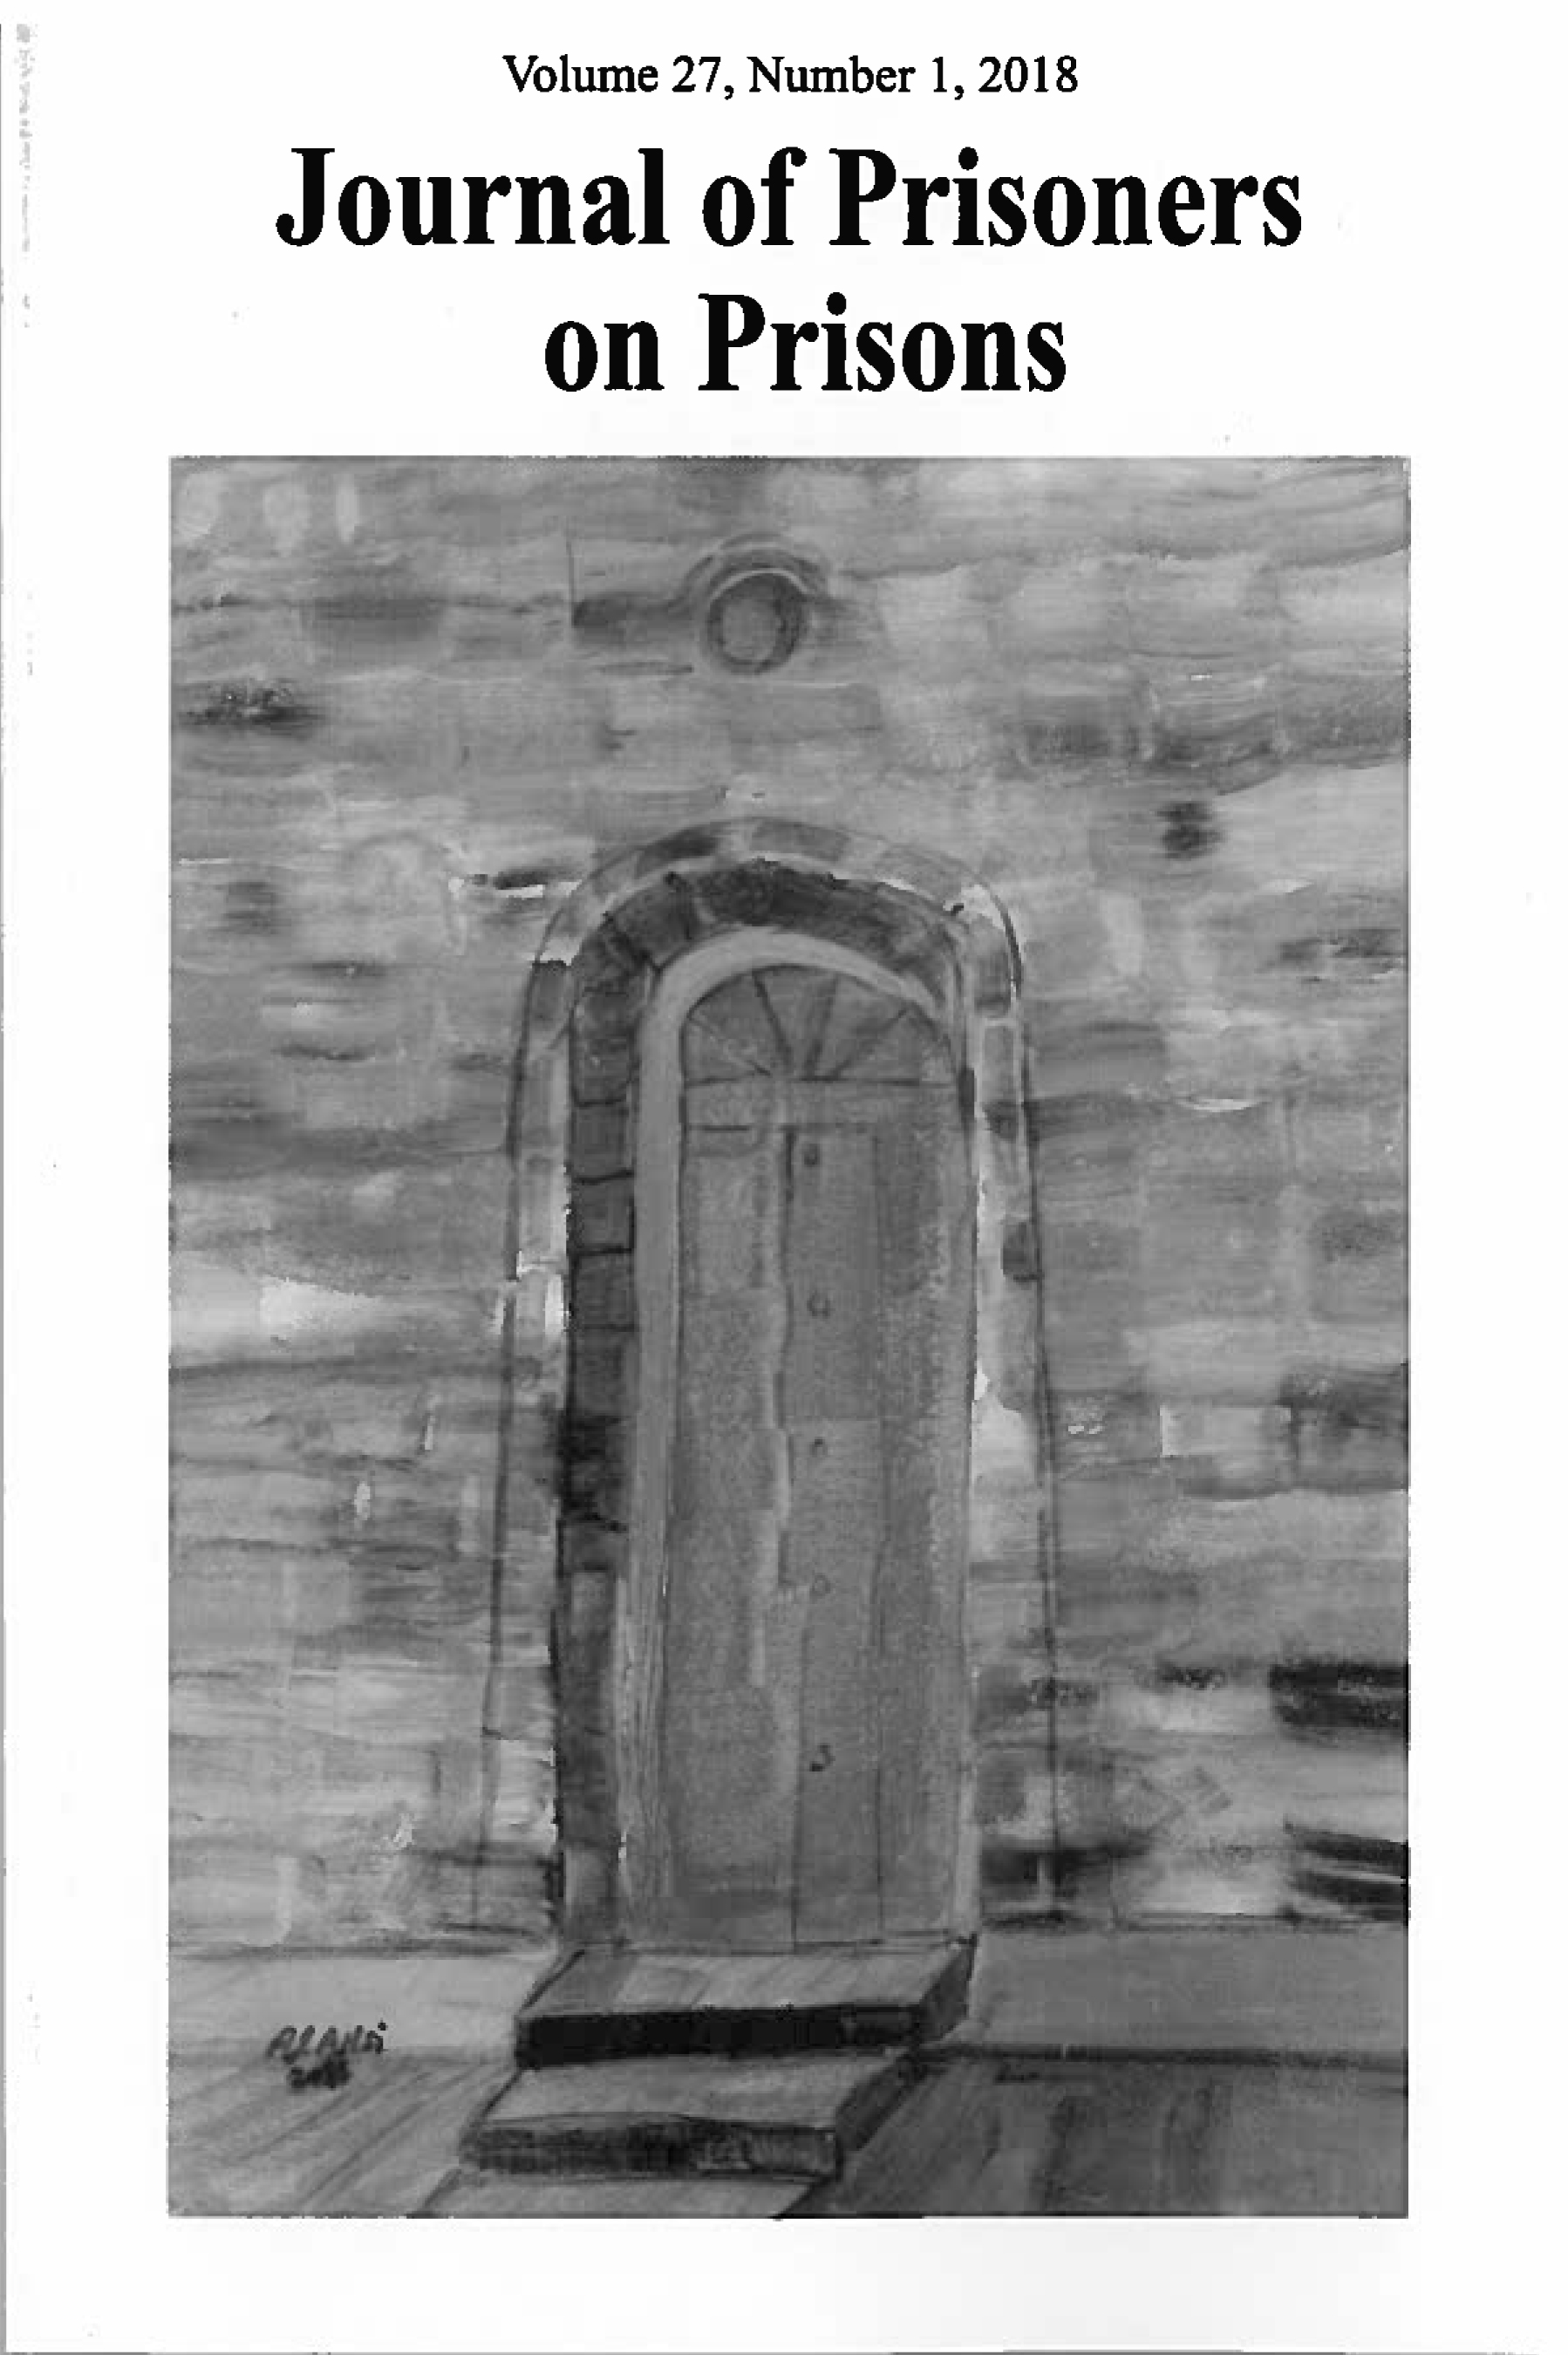 Book cover illustrating a door